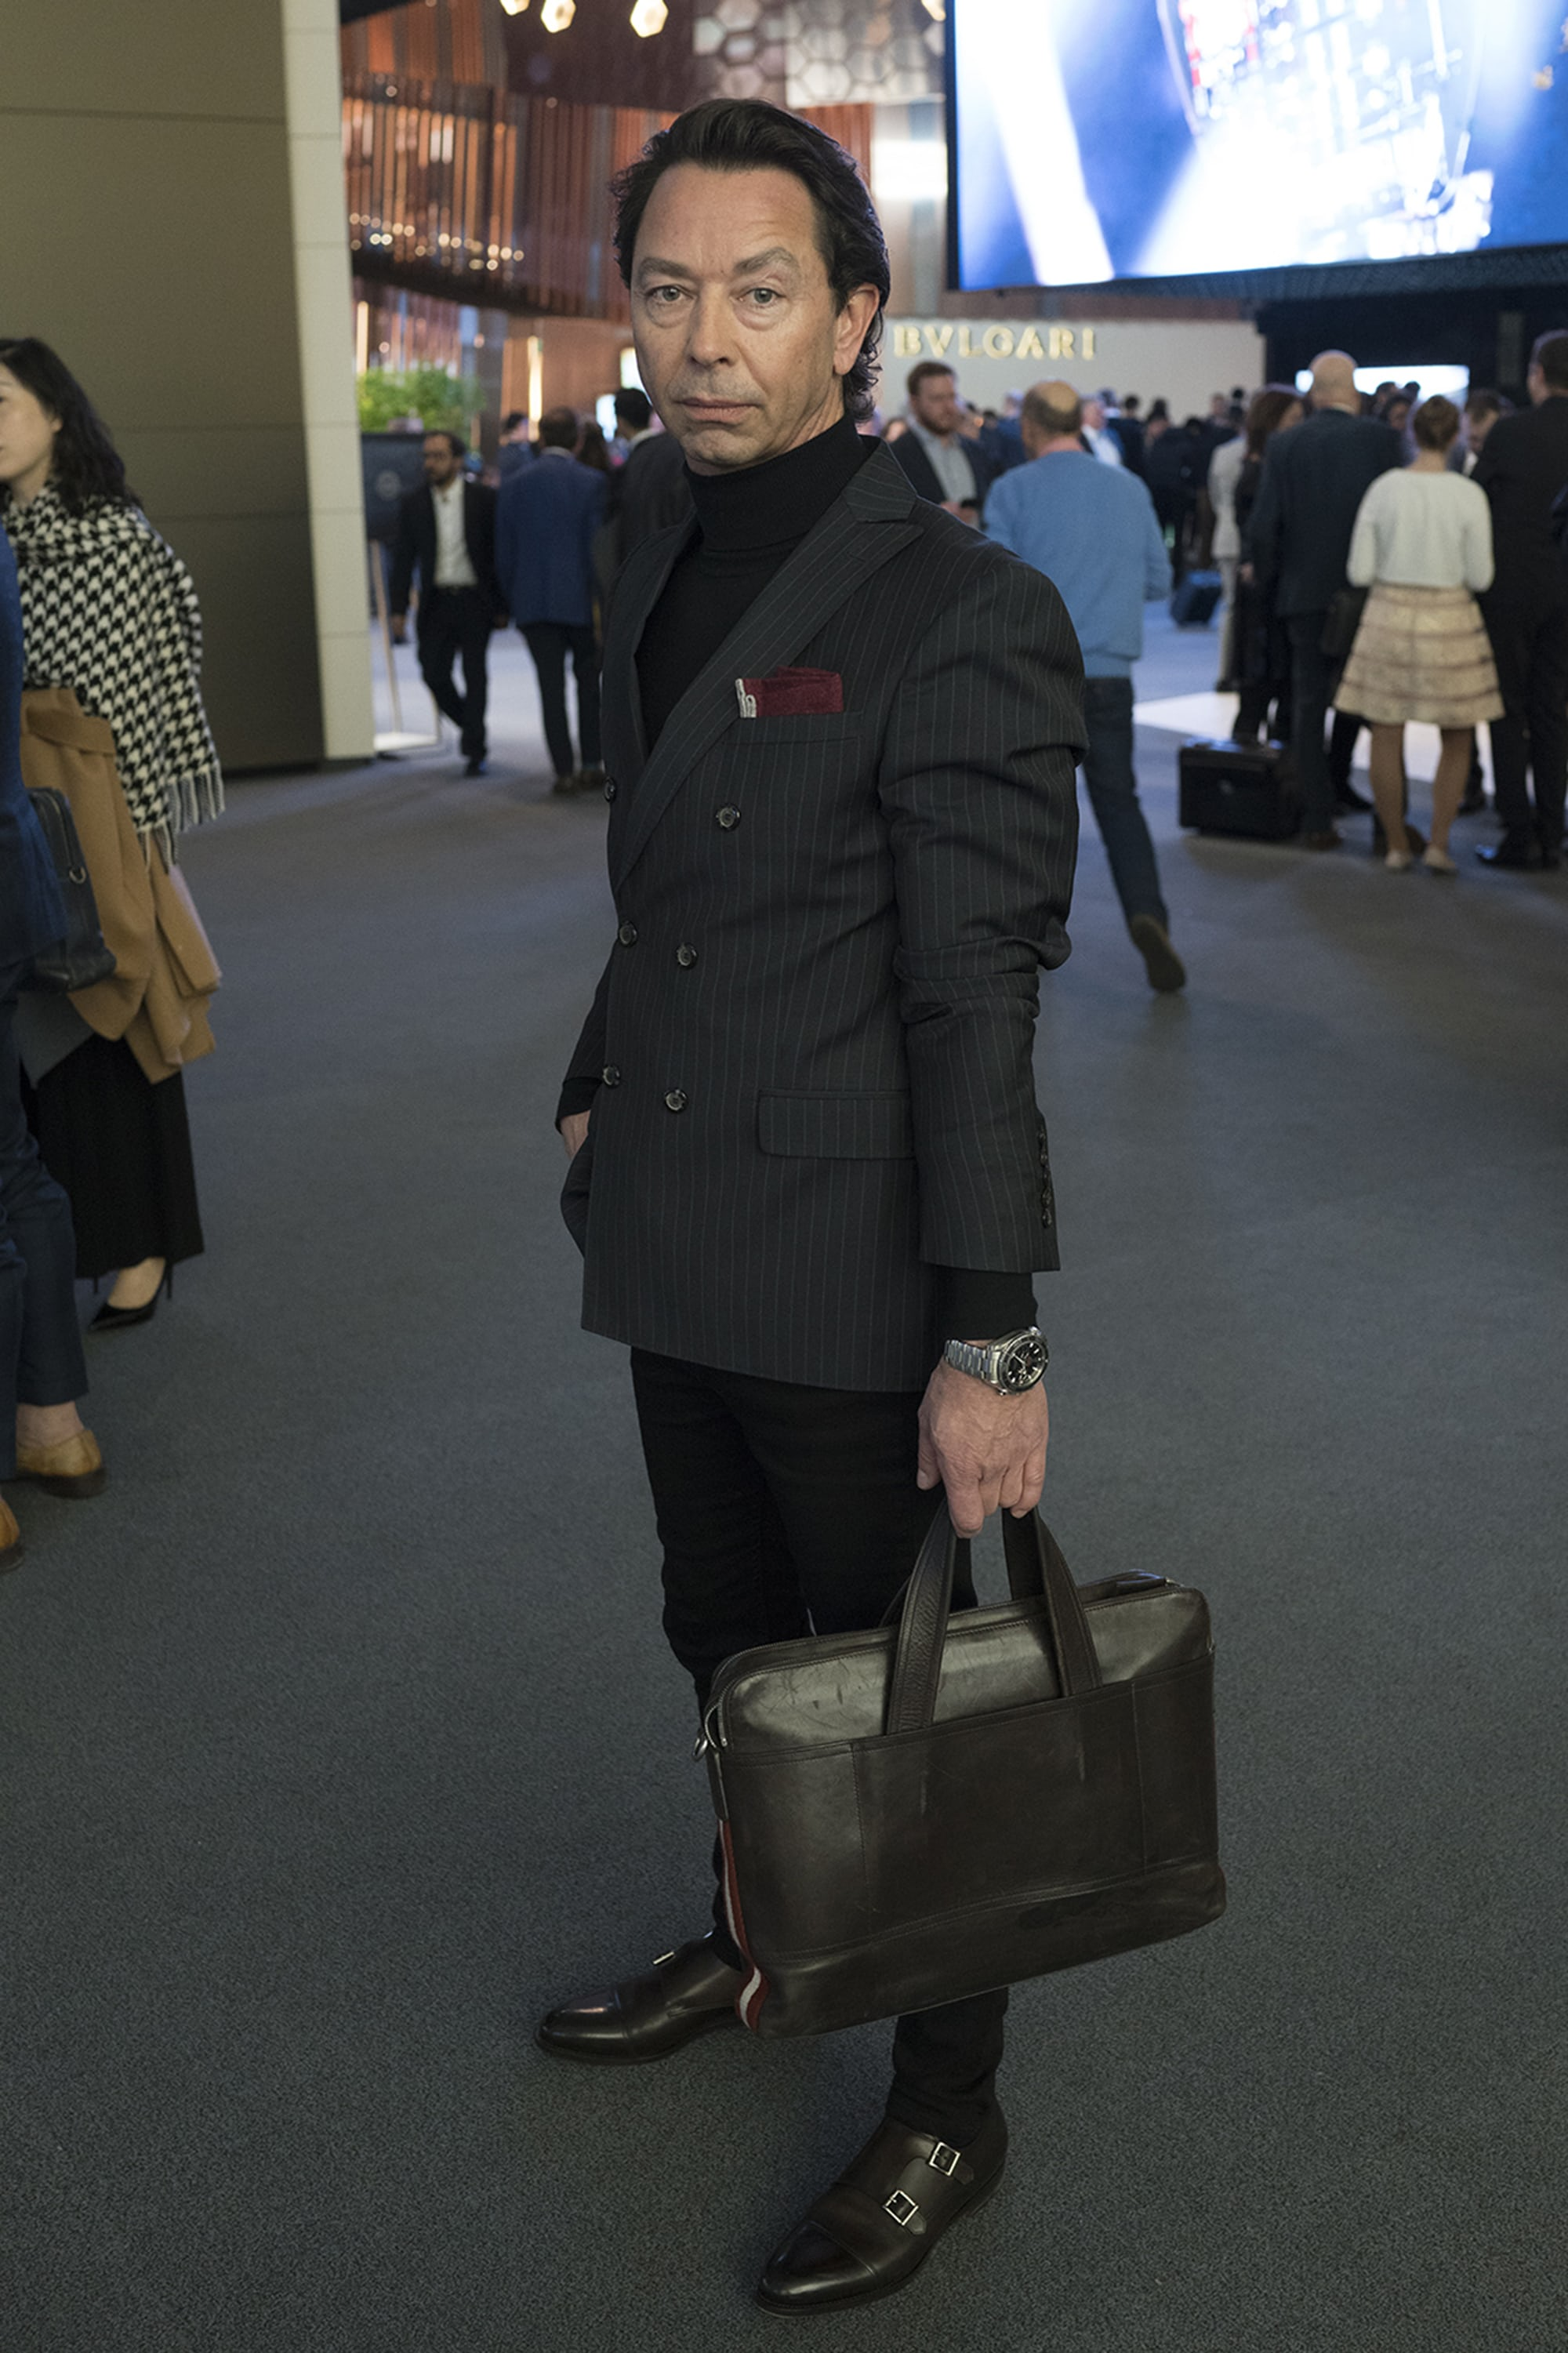 Photo Report: The Fashion And Watches Of Baselworld 2018 Photo Report: The Fashion And Watches Of Baselworld 2018 DSC03947